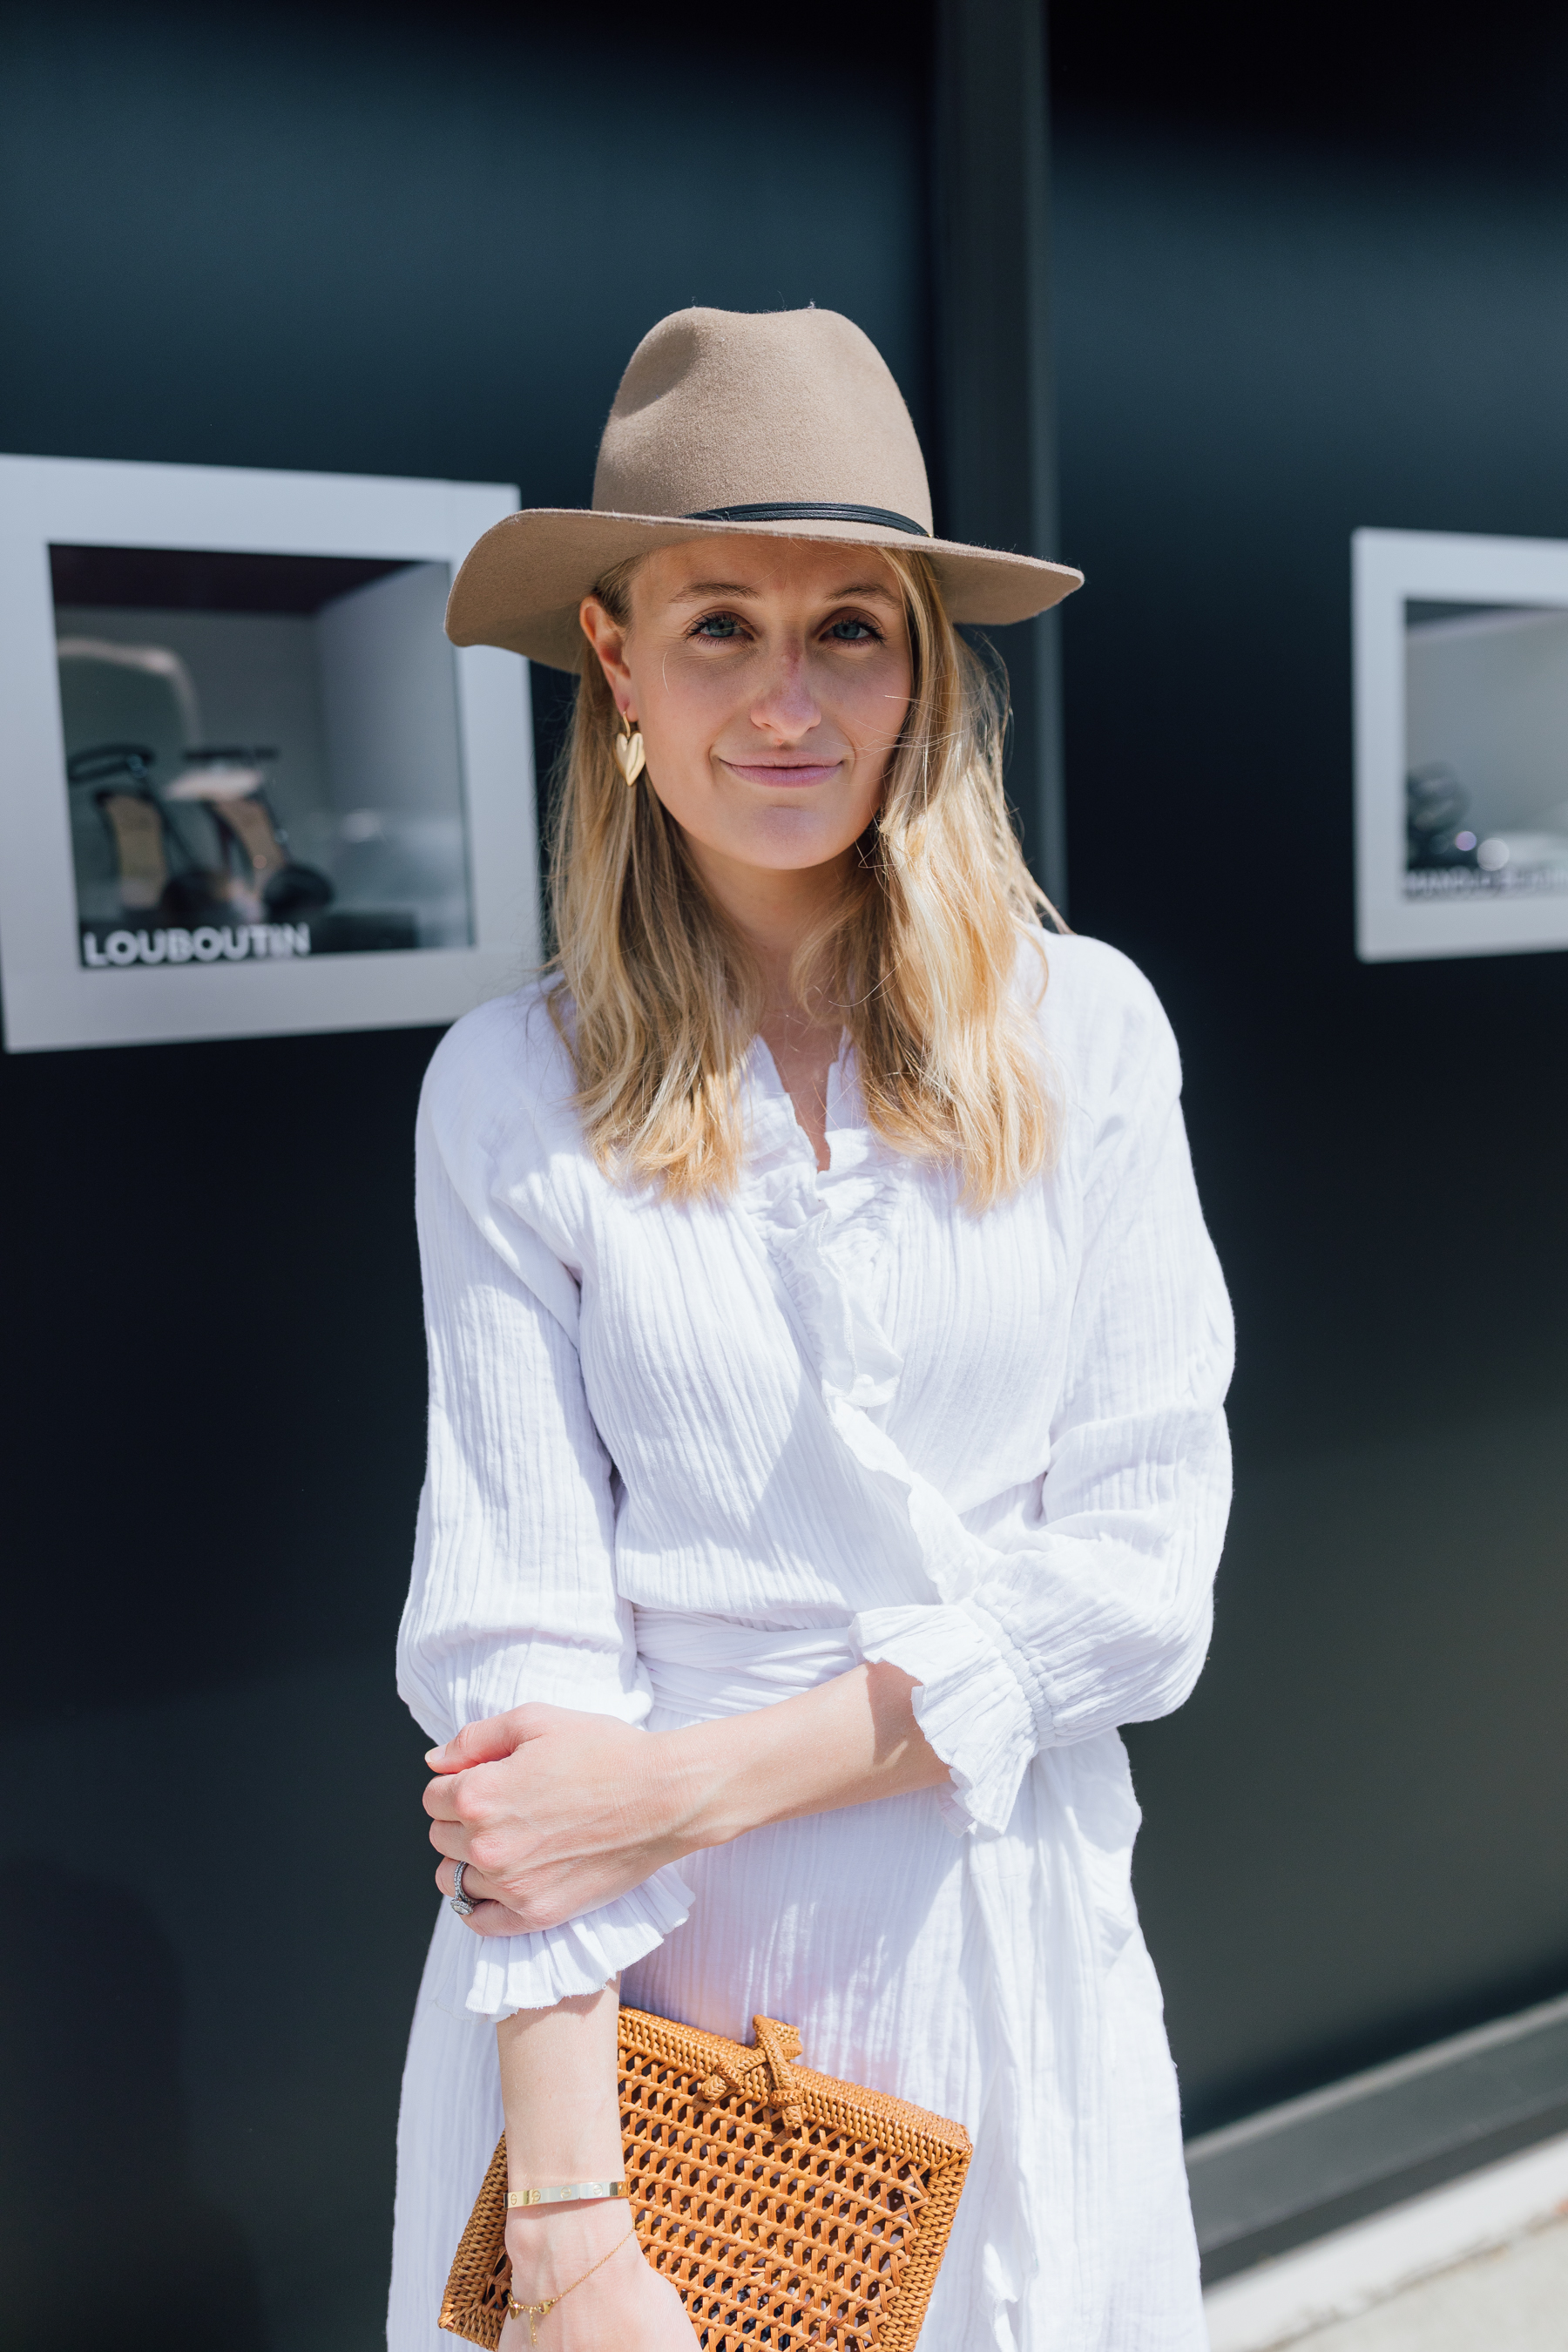 Stephanie Trotta from The Girl Guide in Rhode Resort Dress // How to style a hat for summer // White dress for summer